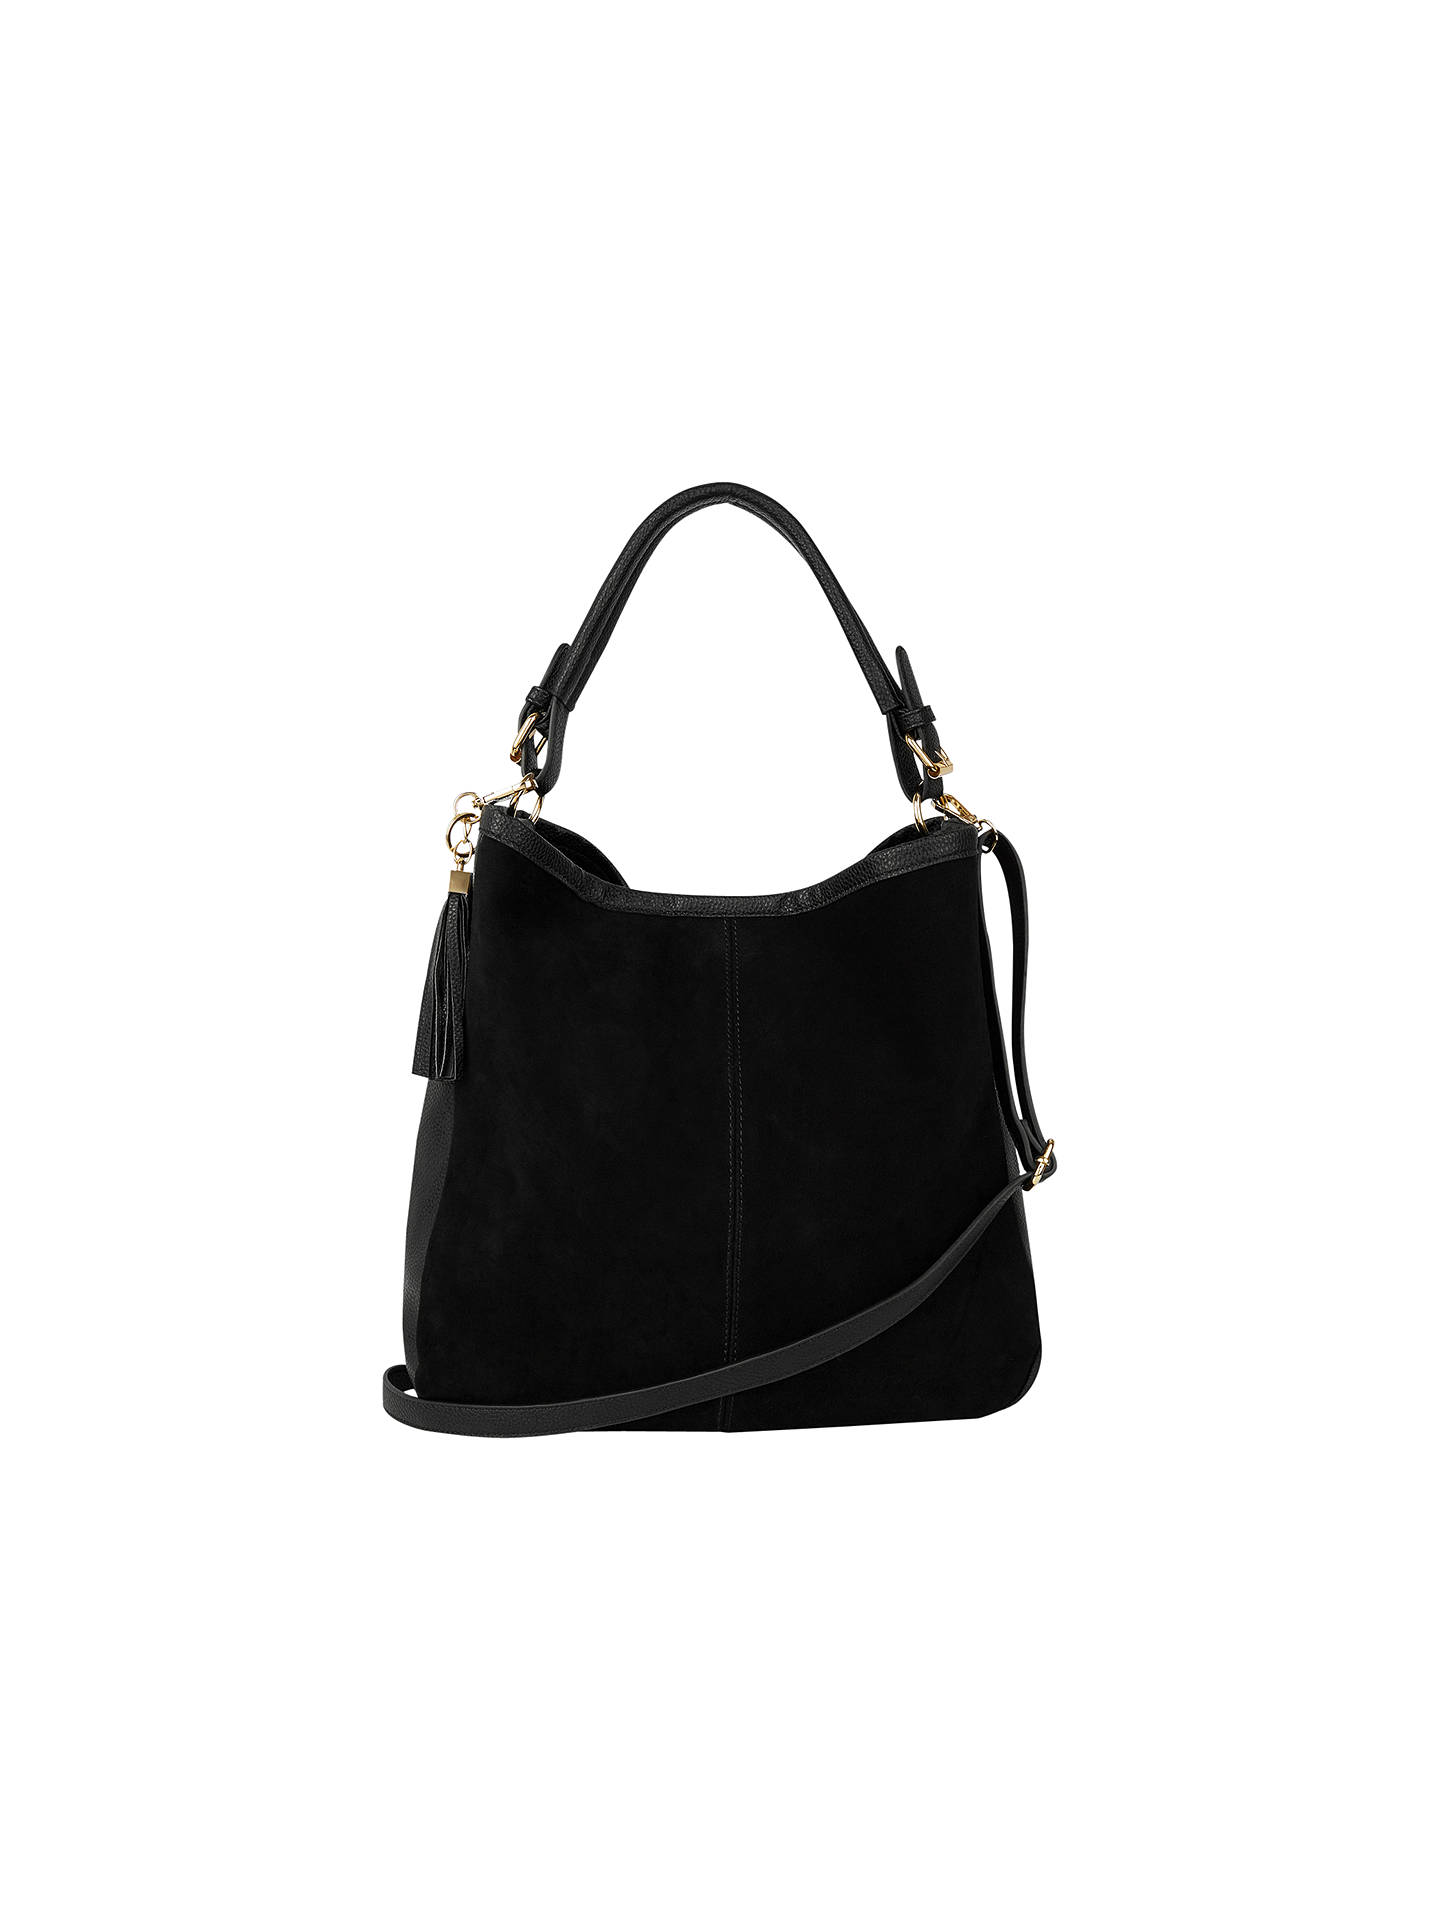 Oasis Henne Suede Hobo Handbag Black Online At Johnlewis